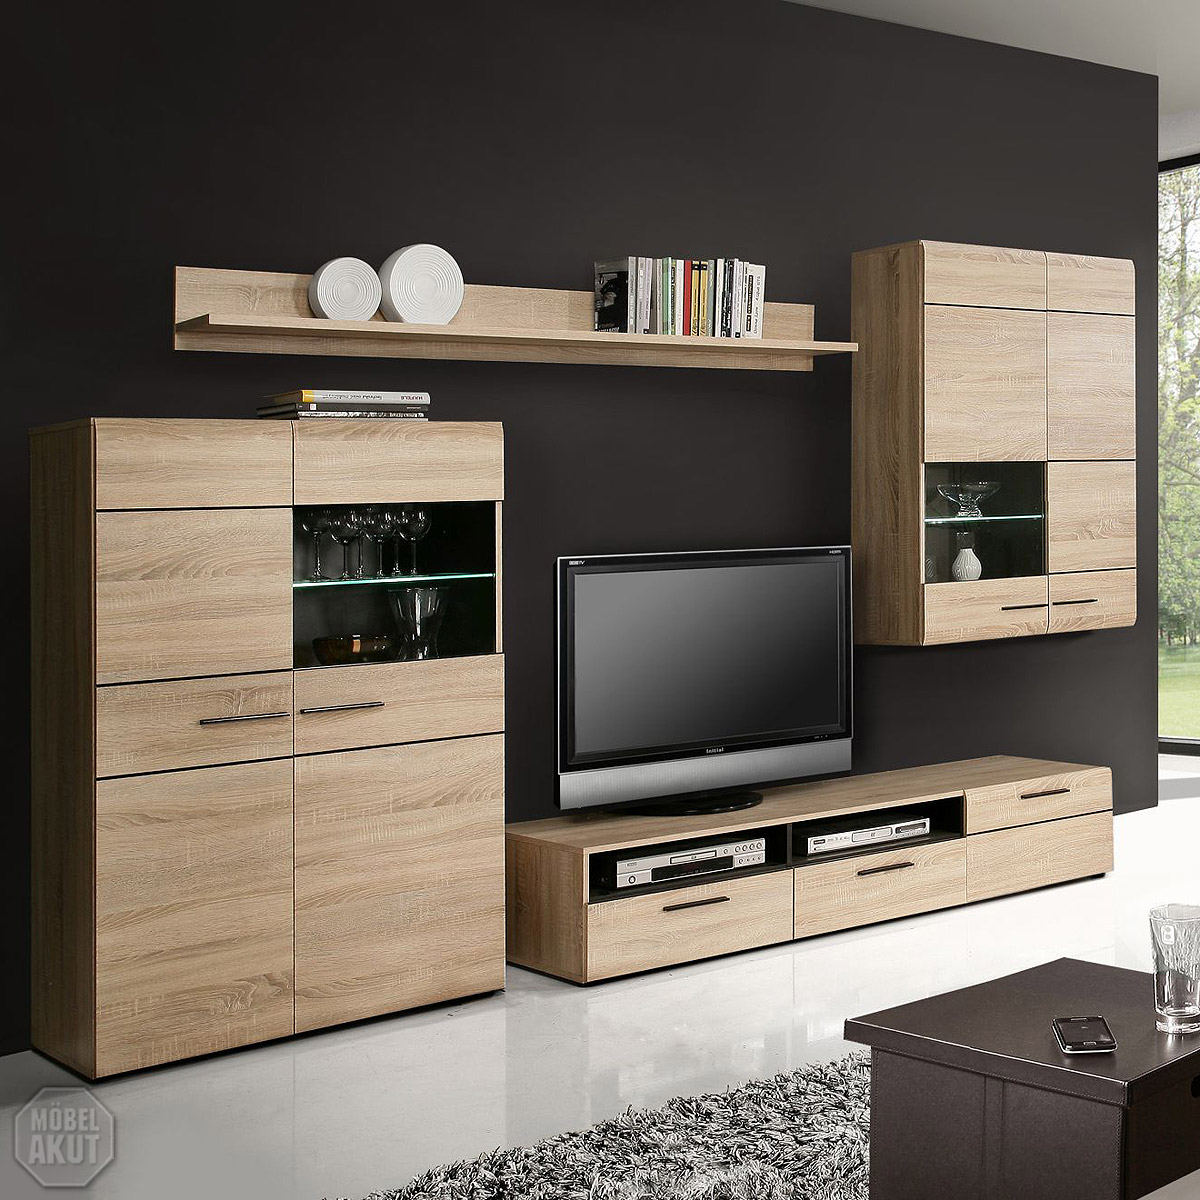 wohnwand 4 combino anbauwand wohnzimmer sonoma denver eiche wenge led ebay. Black Bedroom Furniture Sets. Home Design Ideas